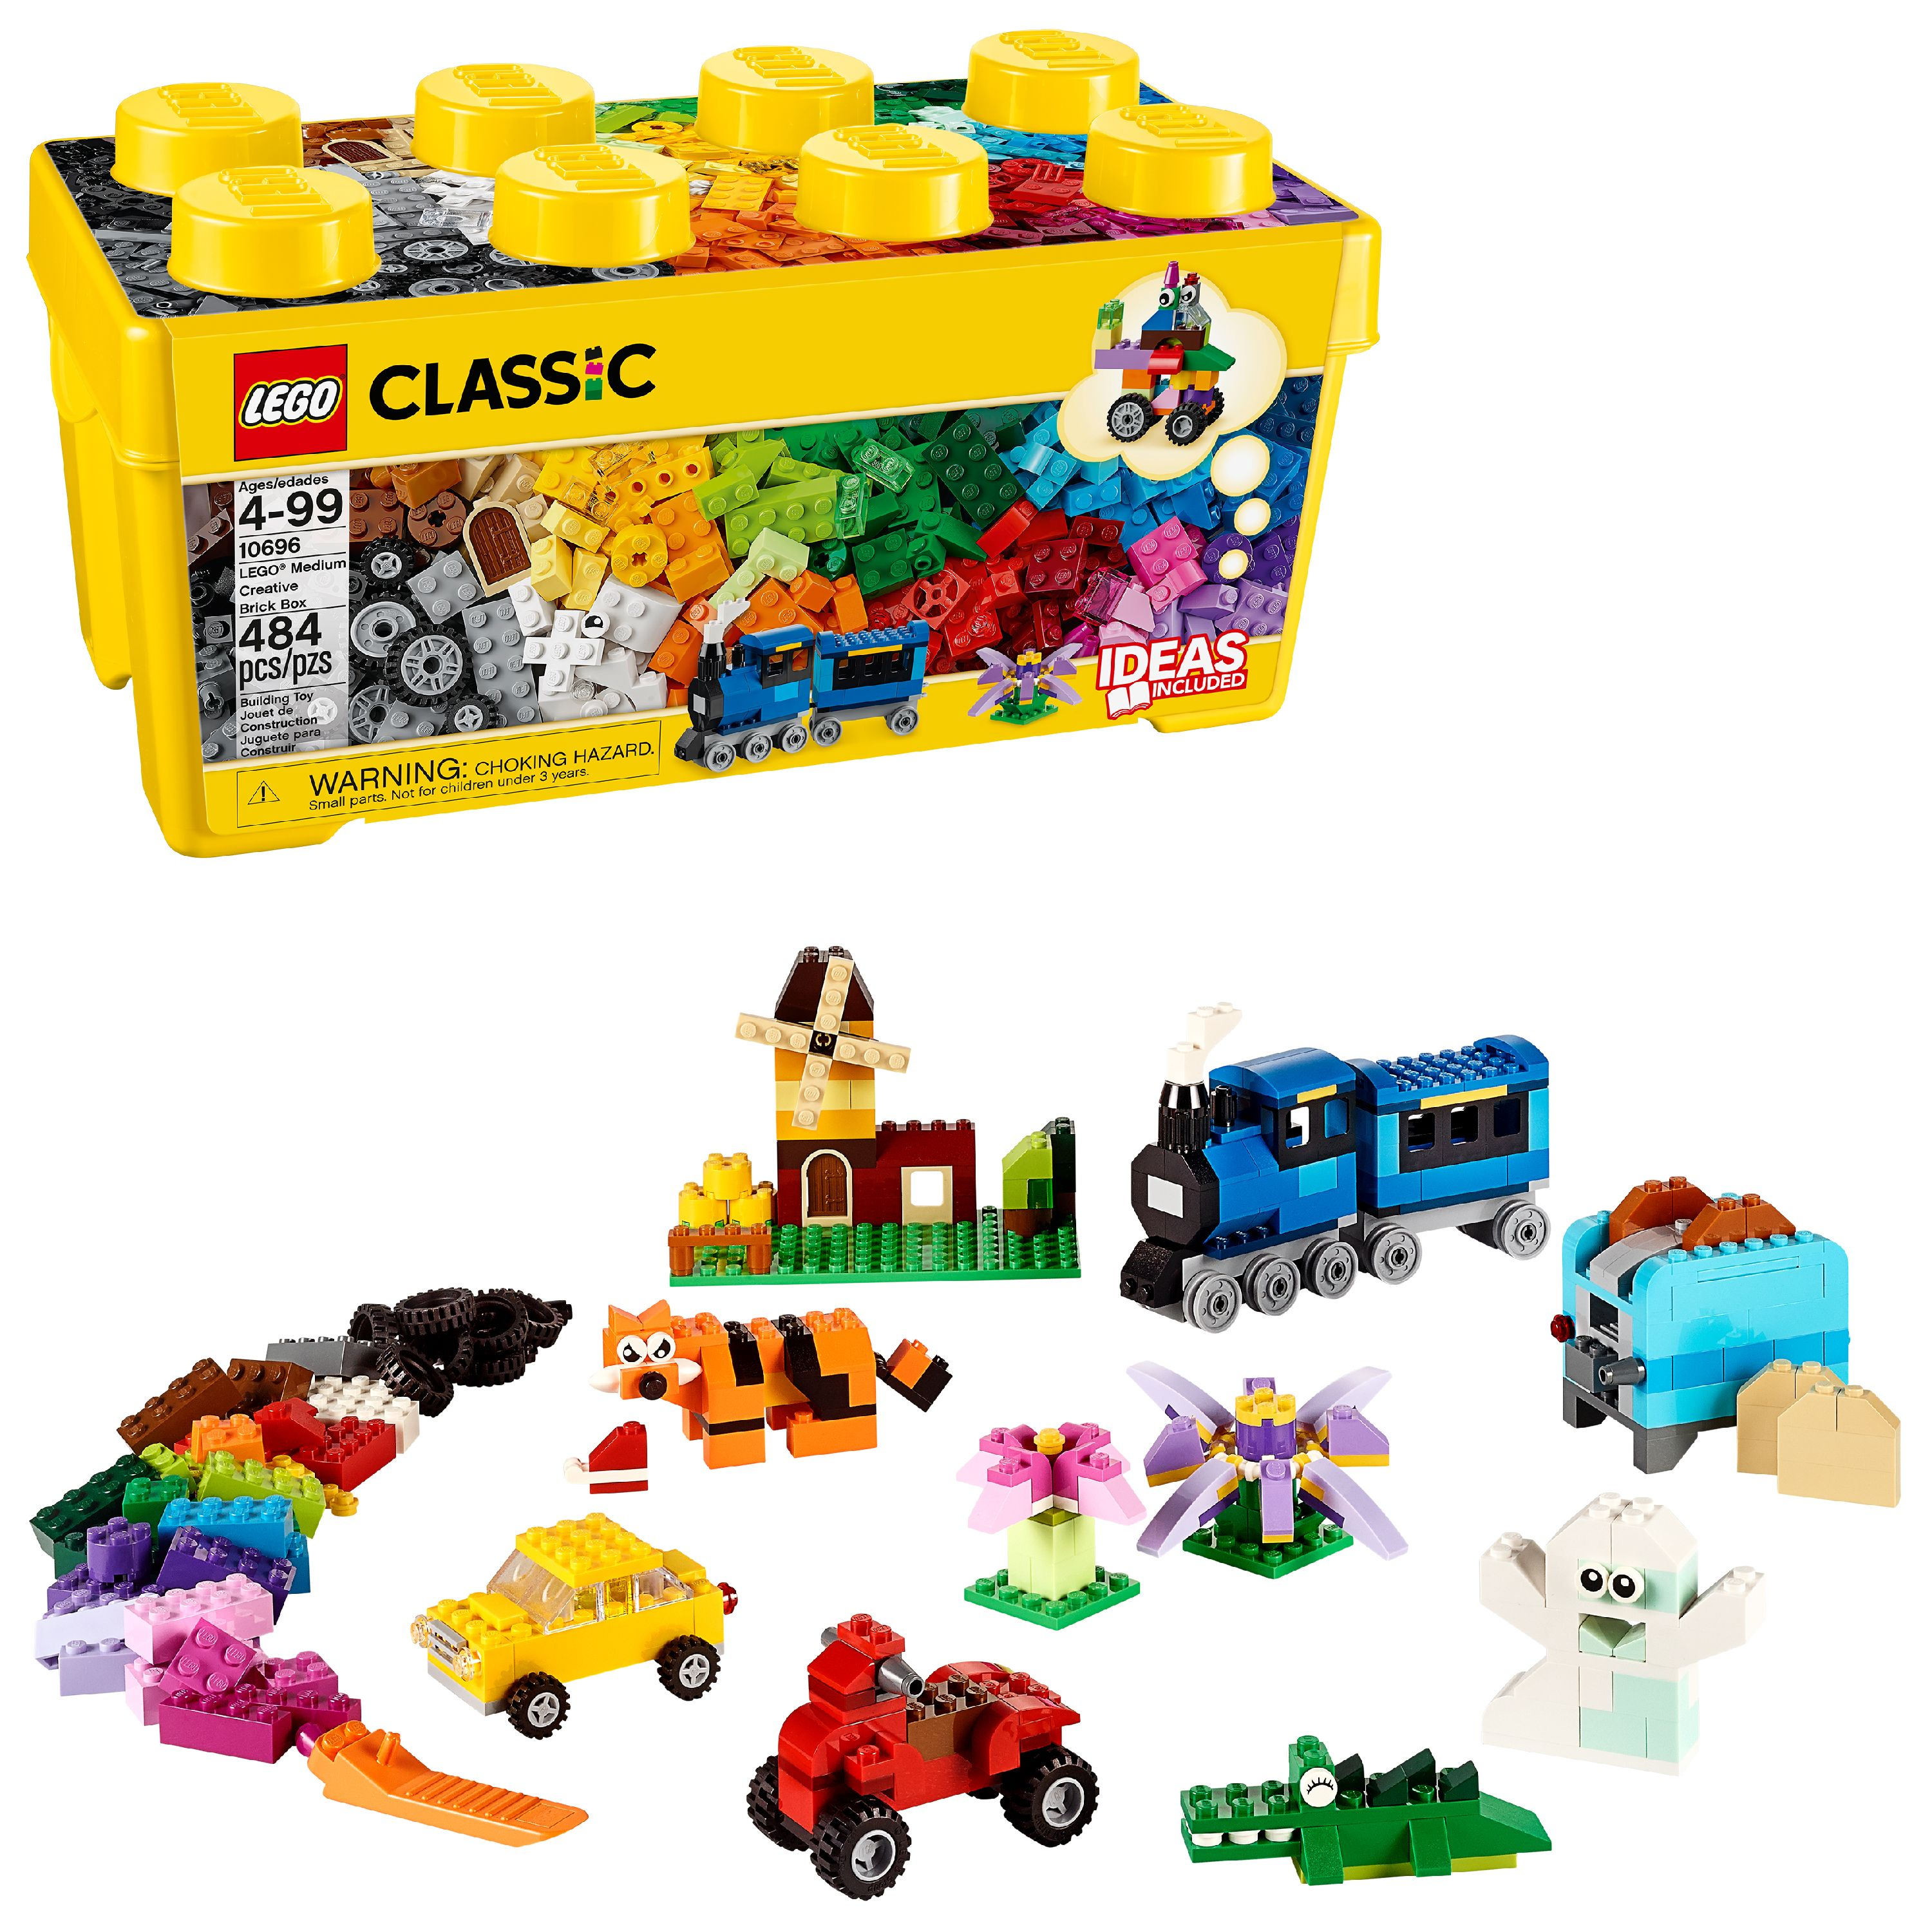 LEGO Classic Medium Creative Brick Box 10696 Building Kit